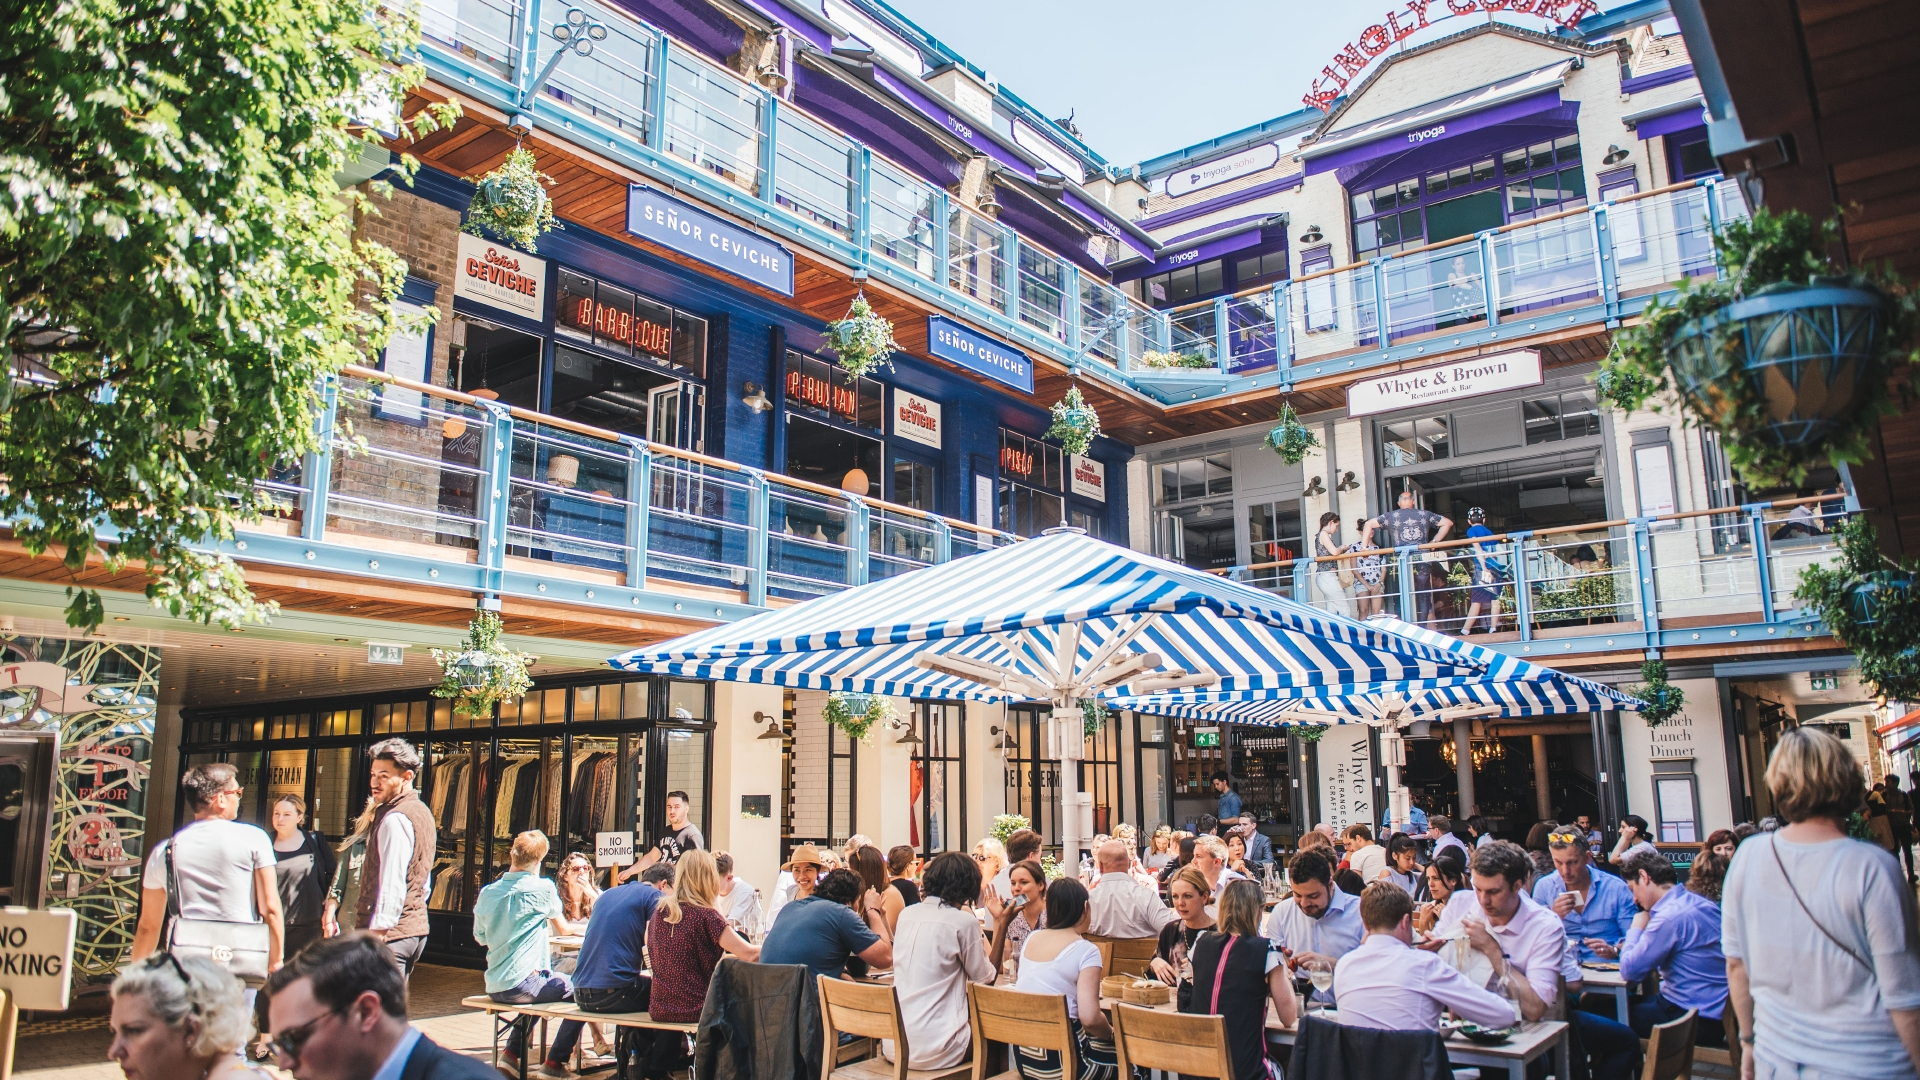 People eating out in London's Kingly Court in summer.